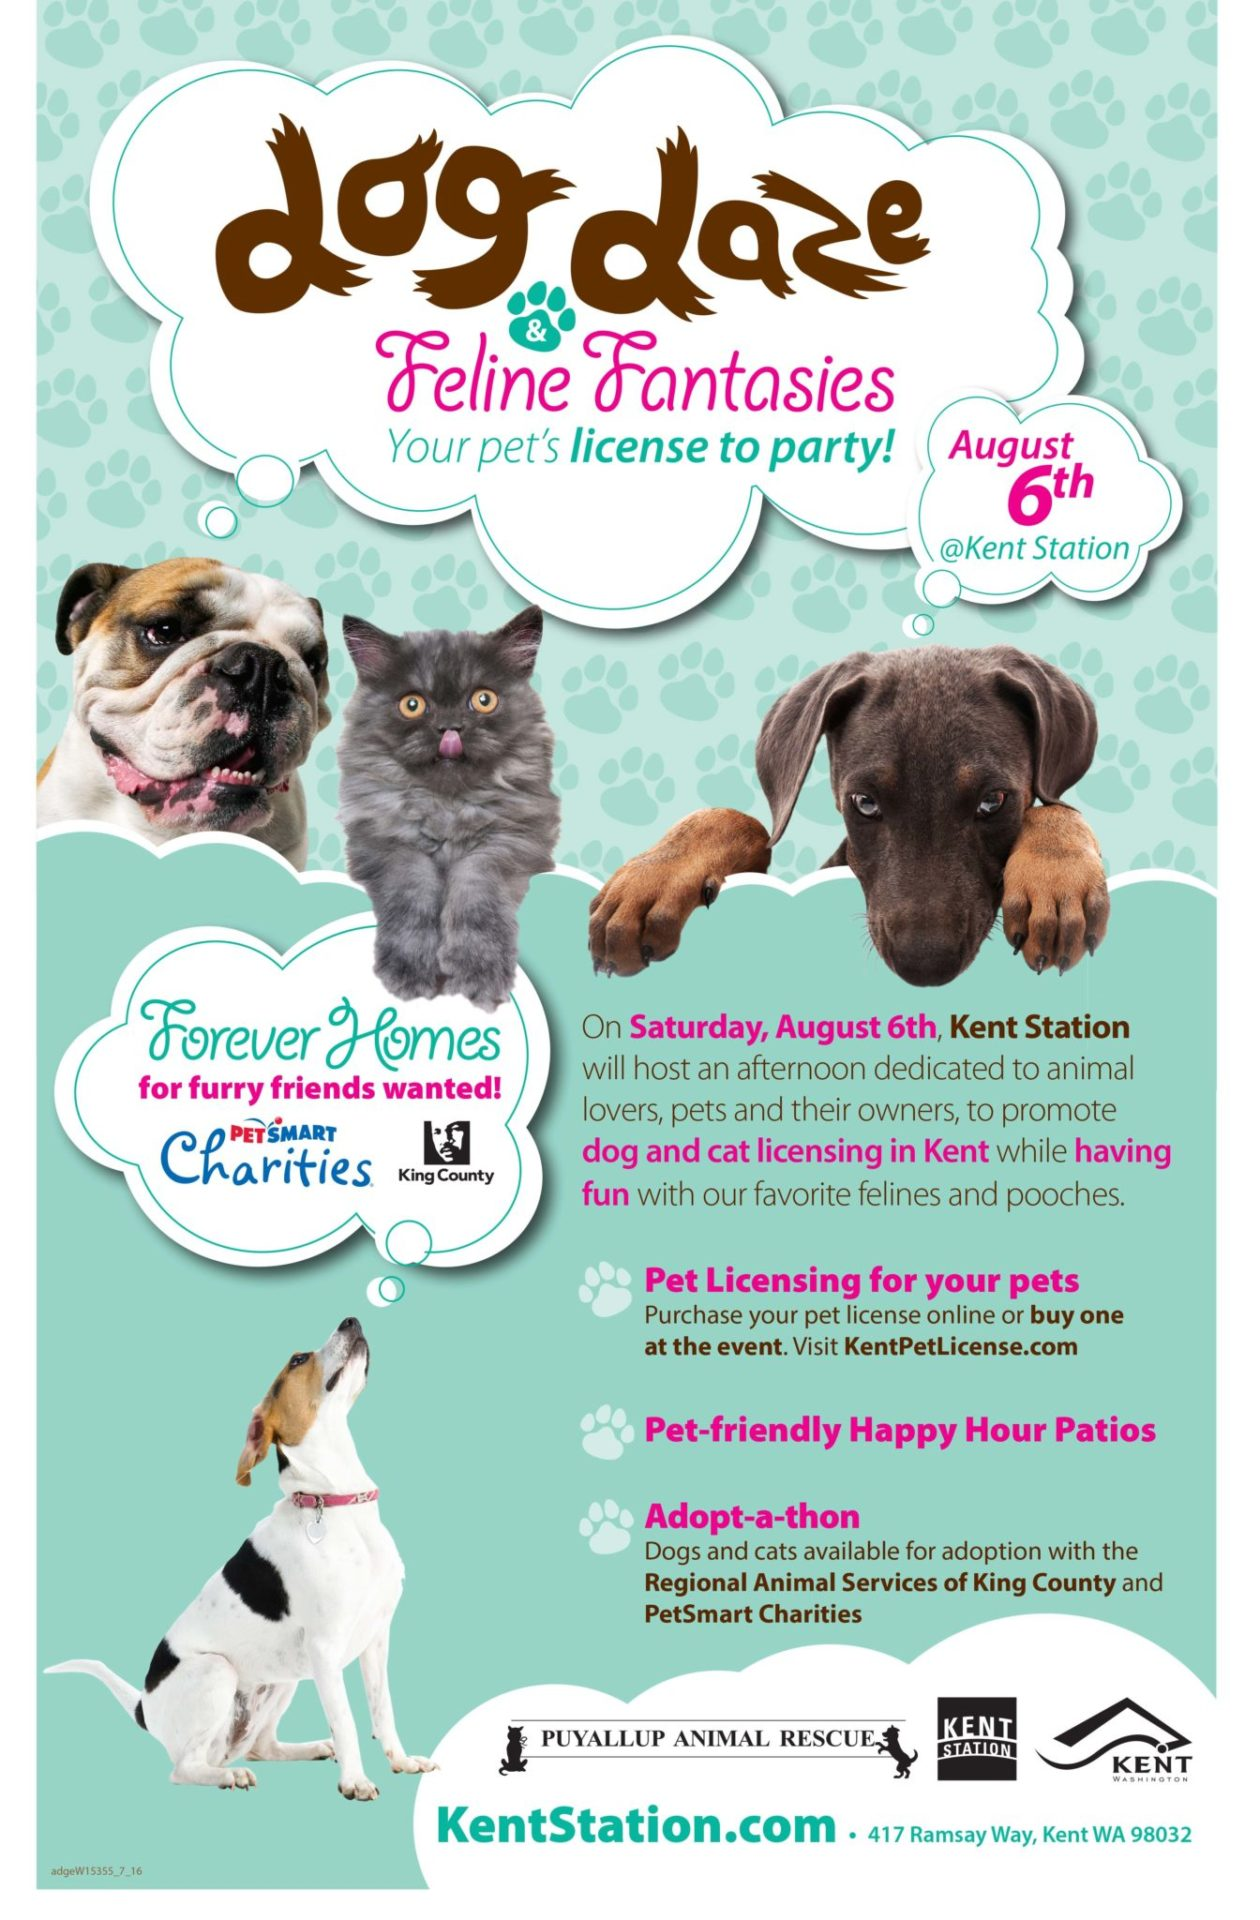 Kent Event: Dog Daze & Feline Fantasies at Kent Station August 6